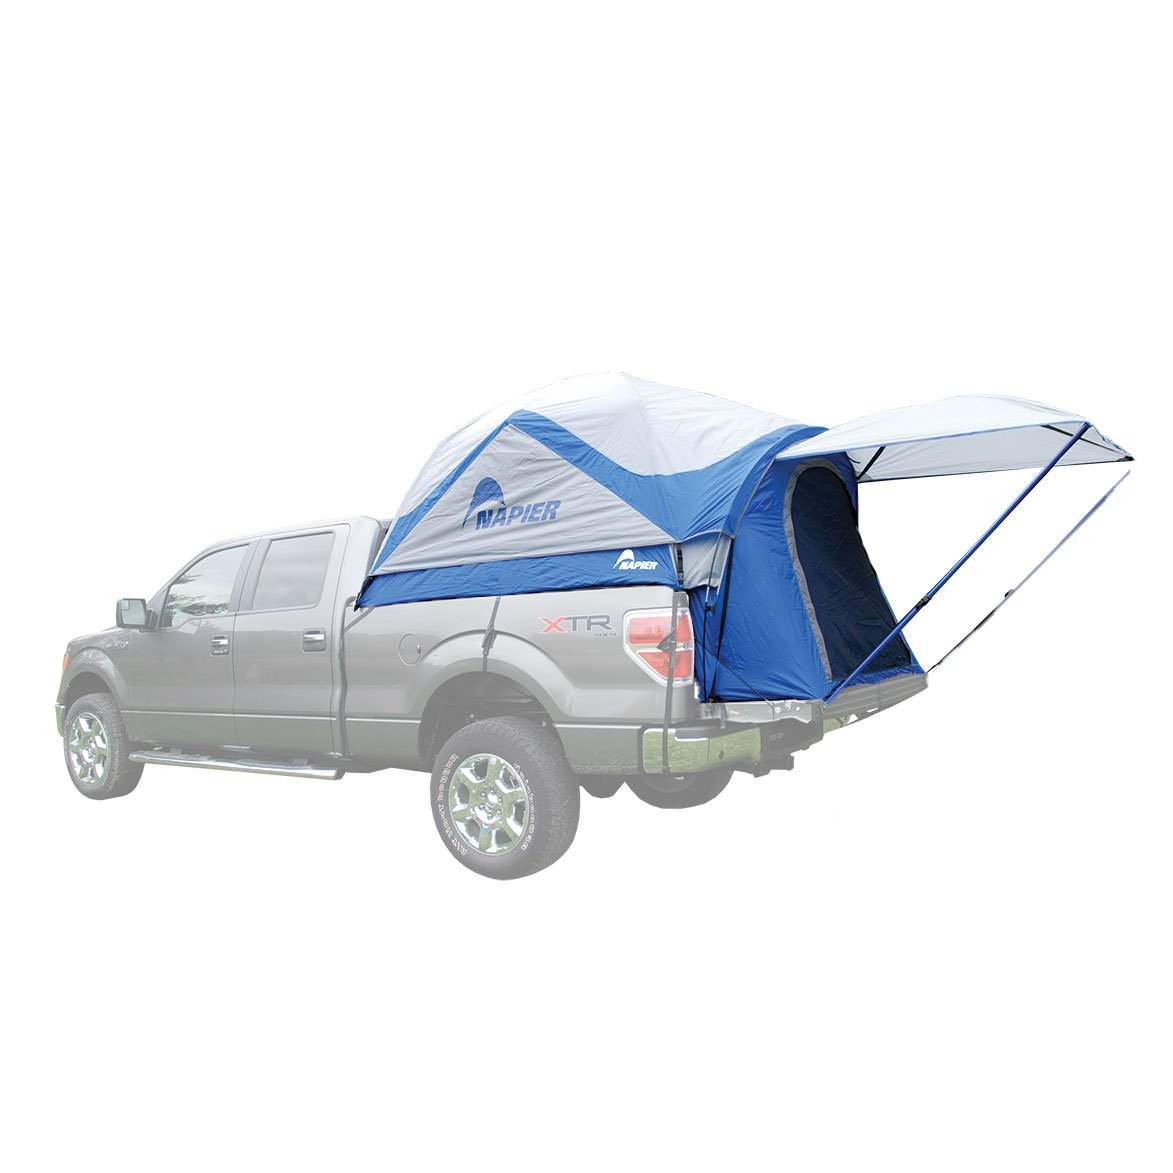 Backroadz Compact Short Box Truck Tent Only for Trucks w// 6-6.1 Bed